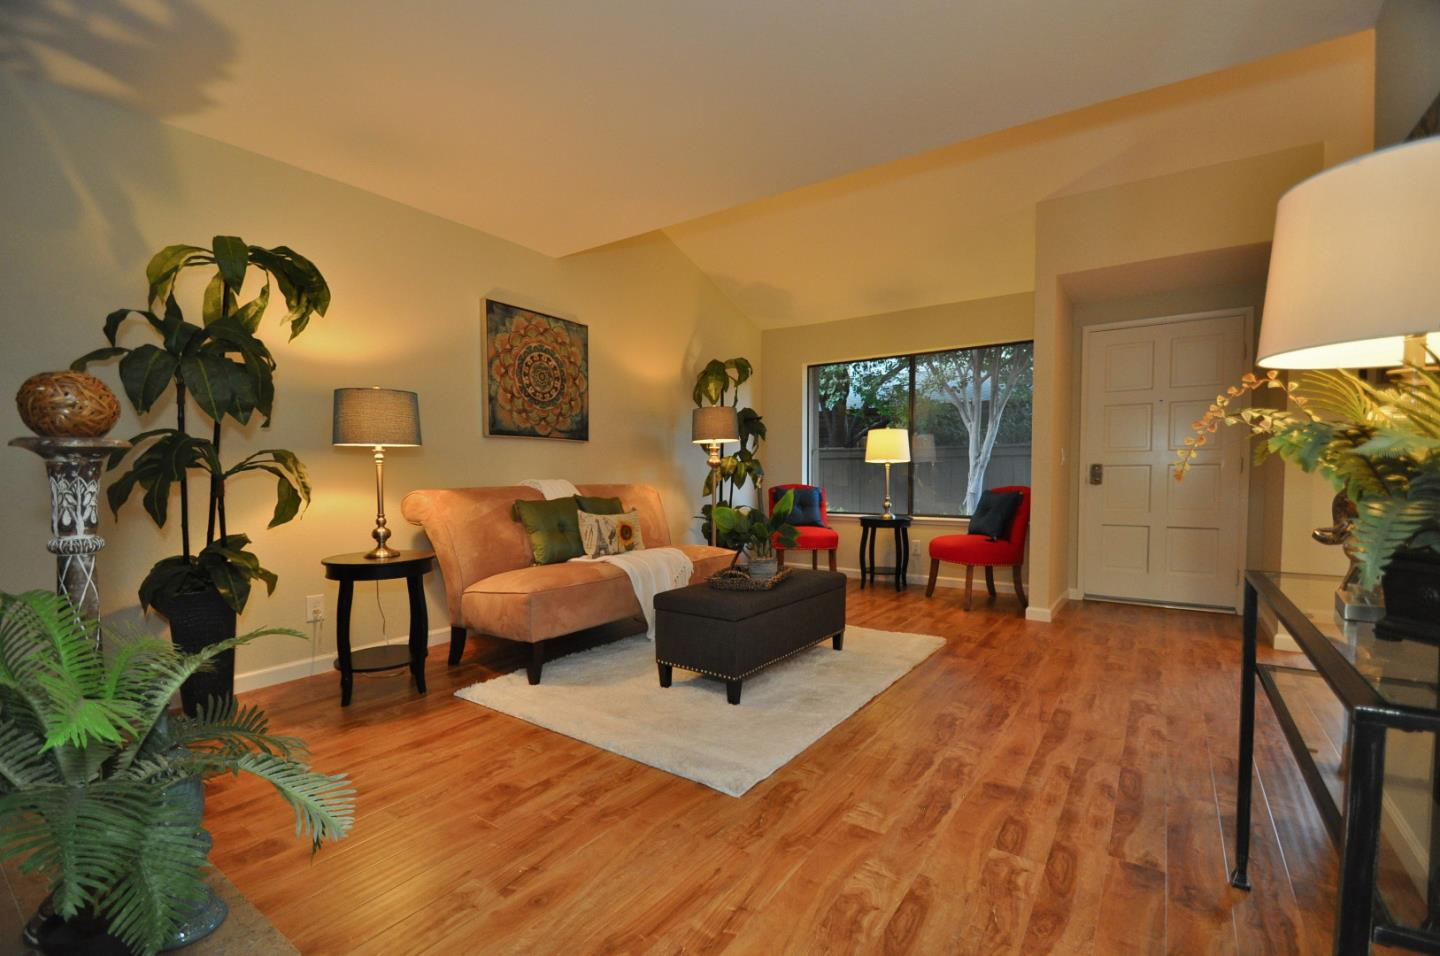 49 Showers Drive #M467, Mountain View, CA 94040